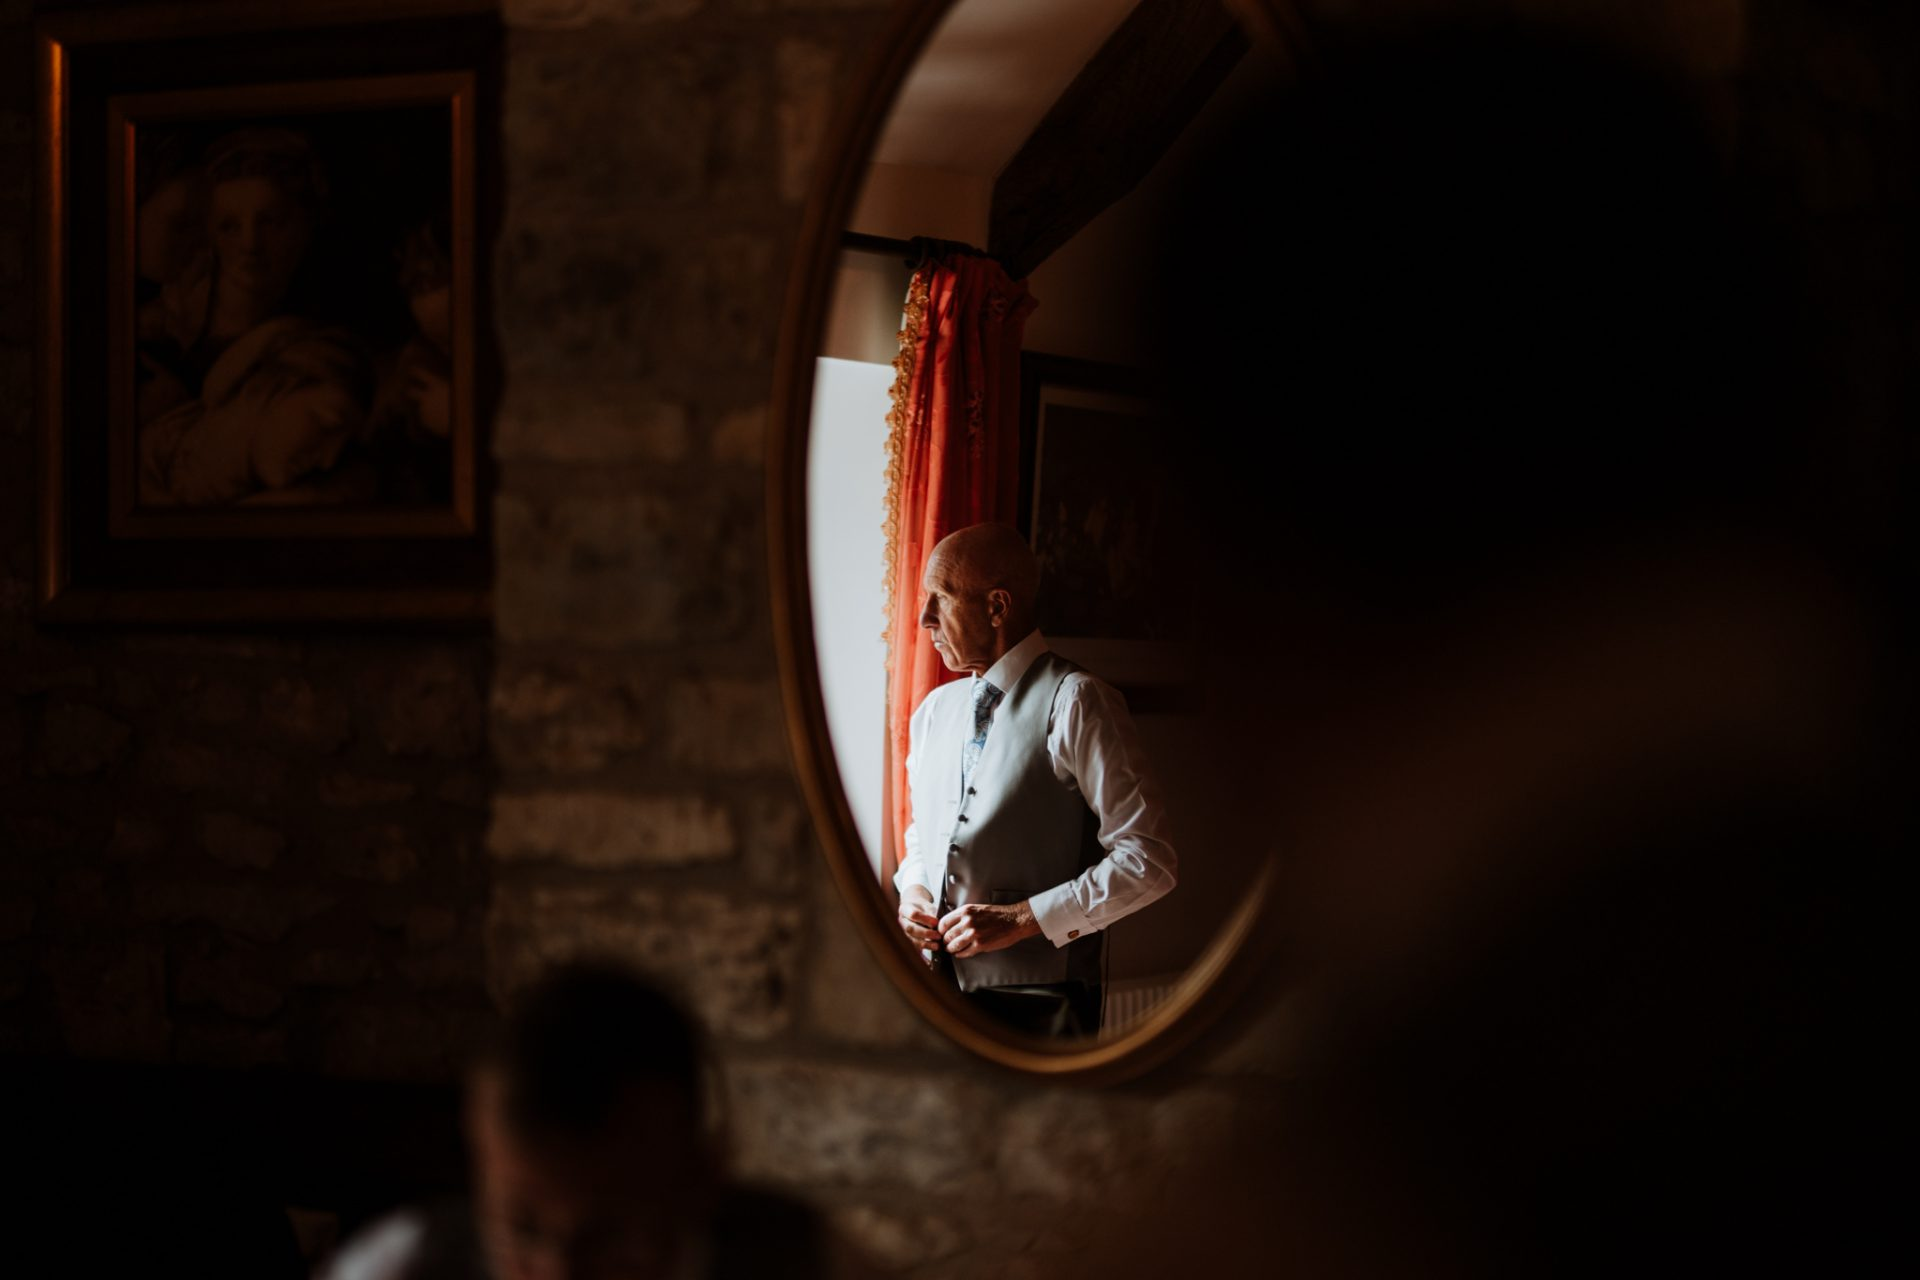 dad getting ready reflected in mirror